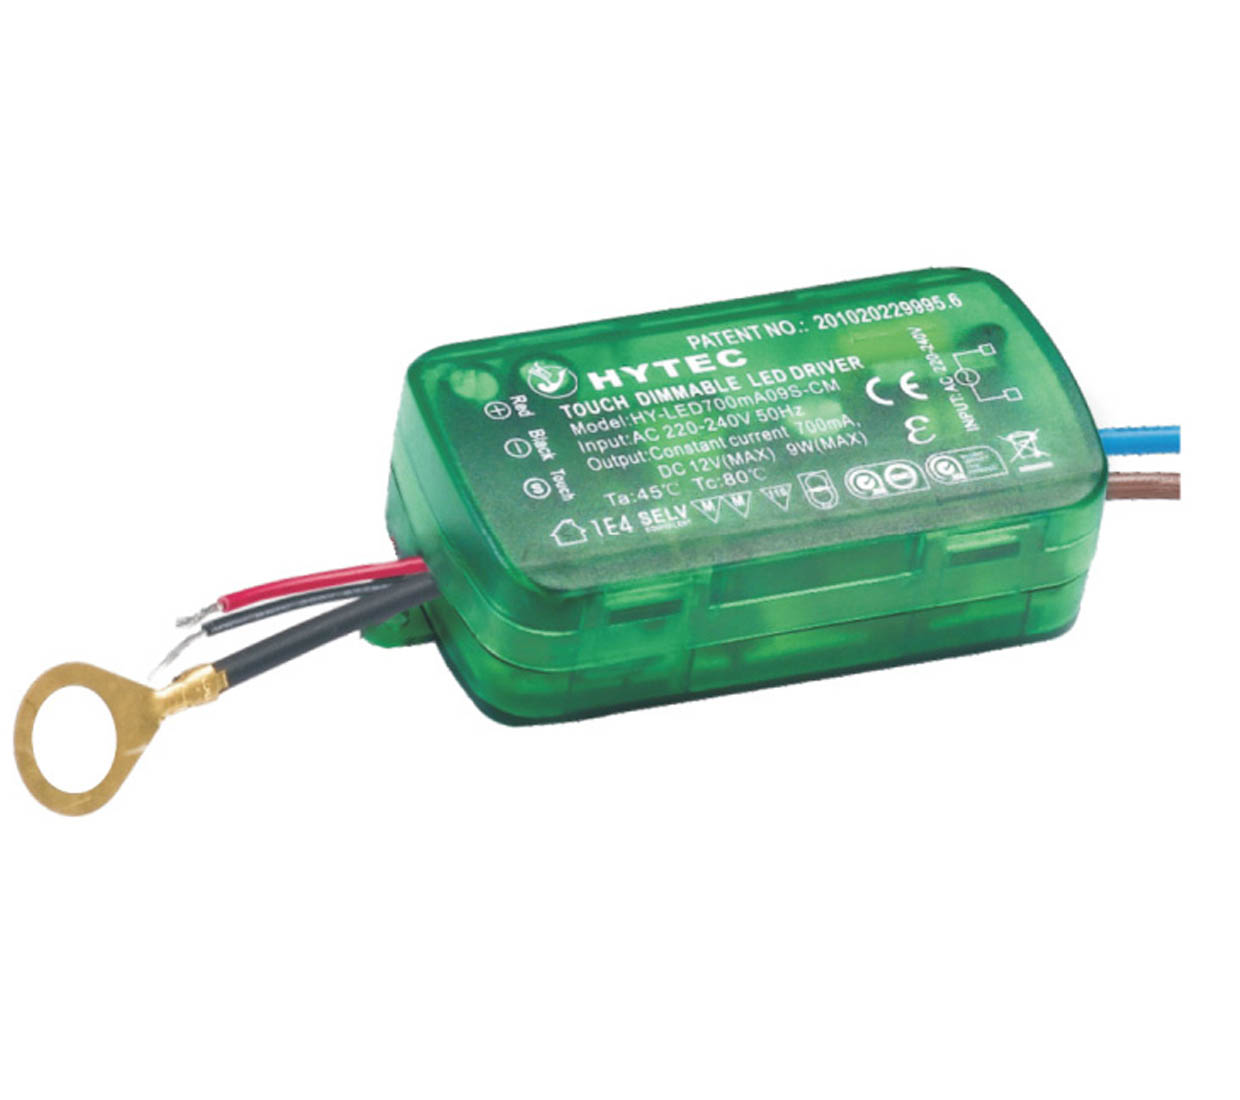 Touch Dimmable LED Driver 9W Series-1